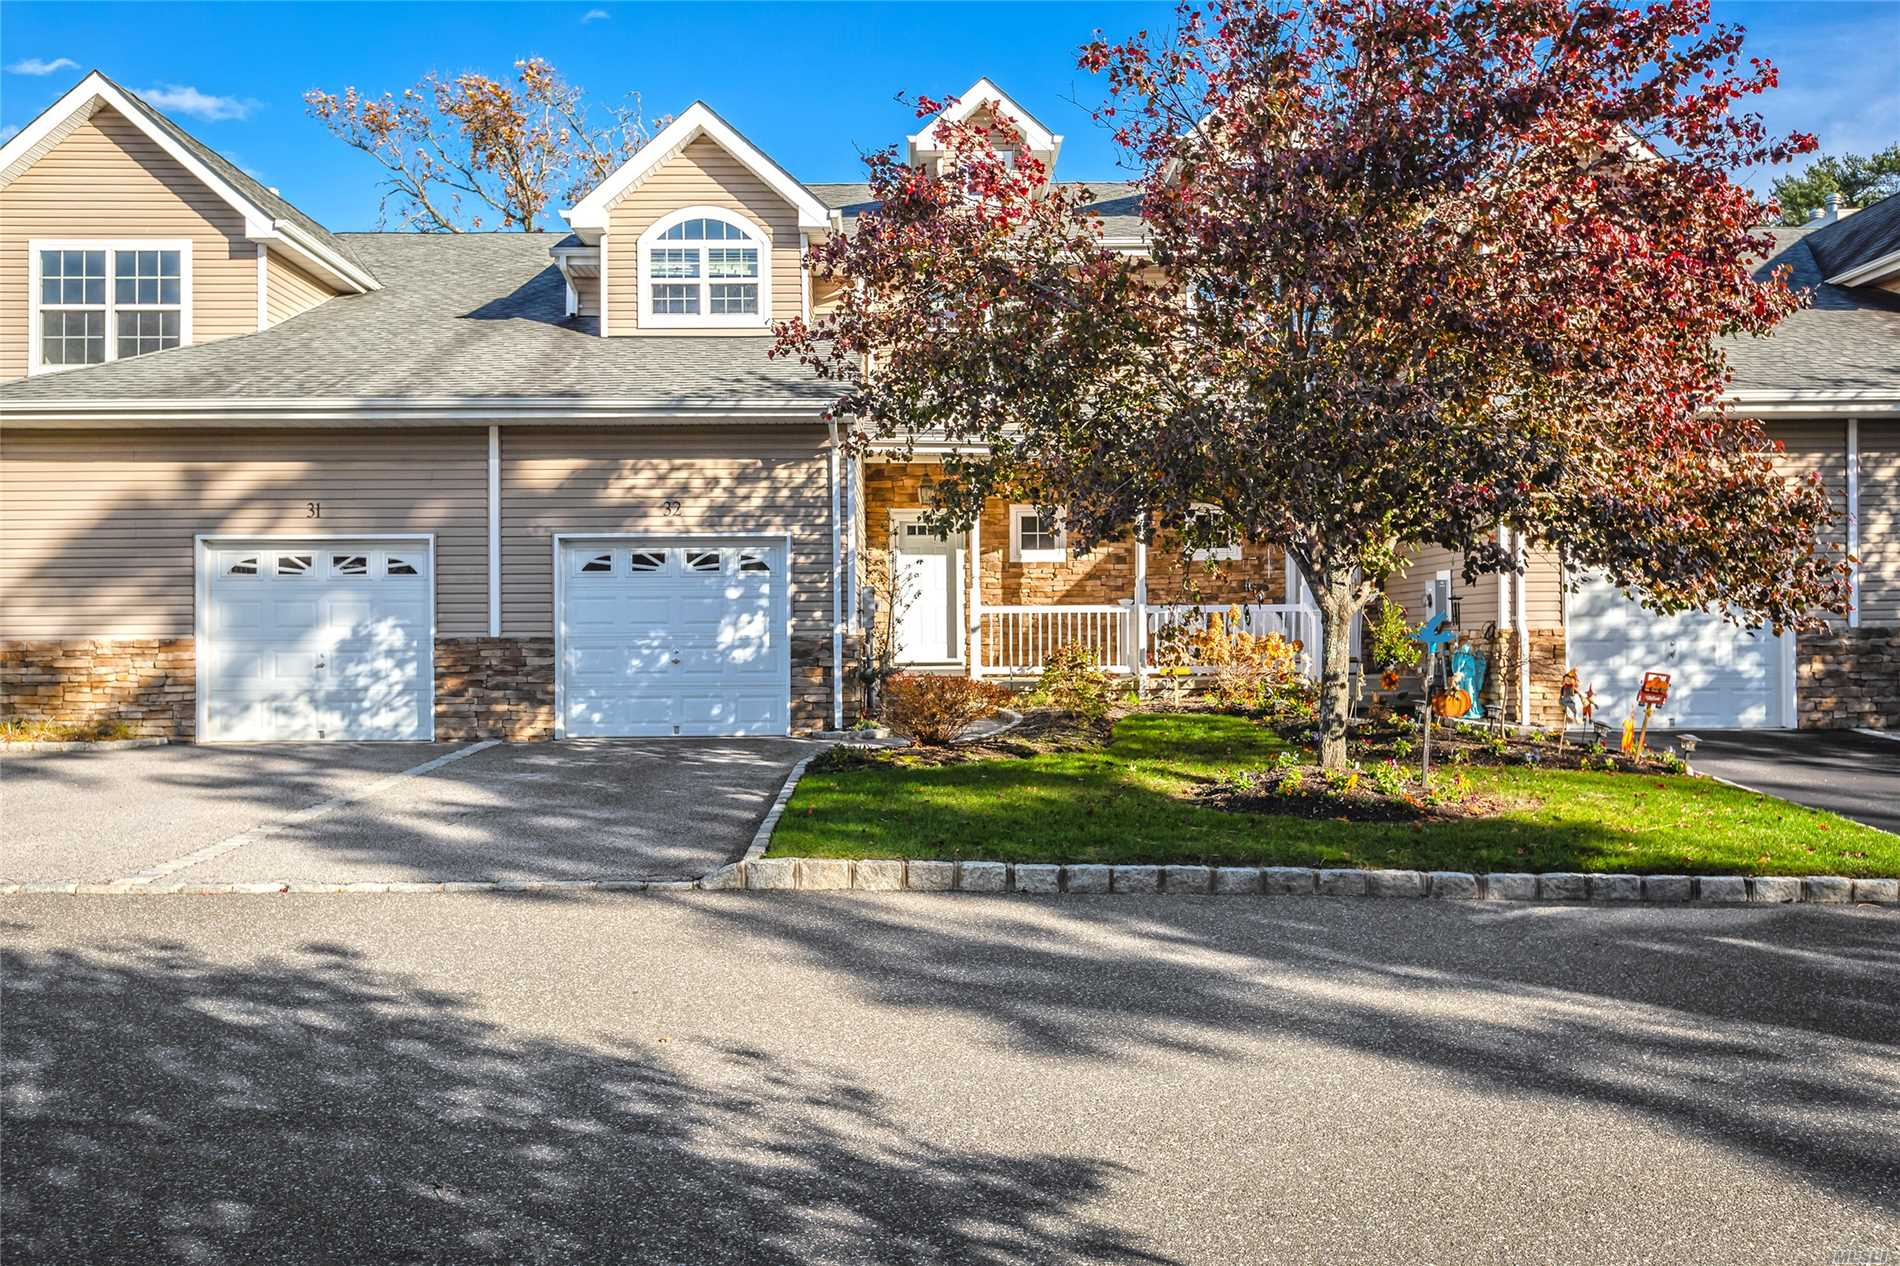 32 Terrace Ln - Patchogue, New York